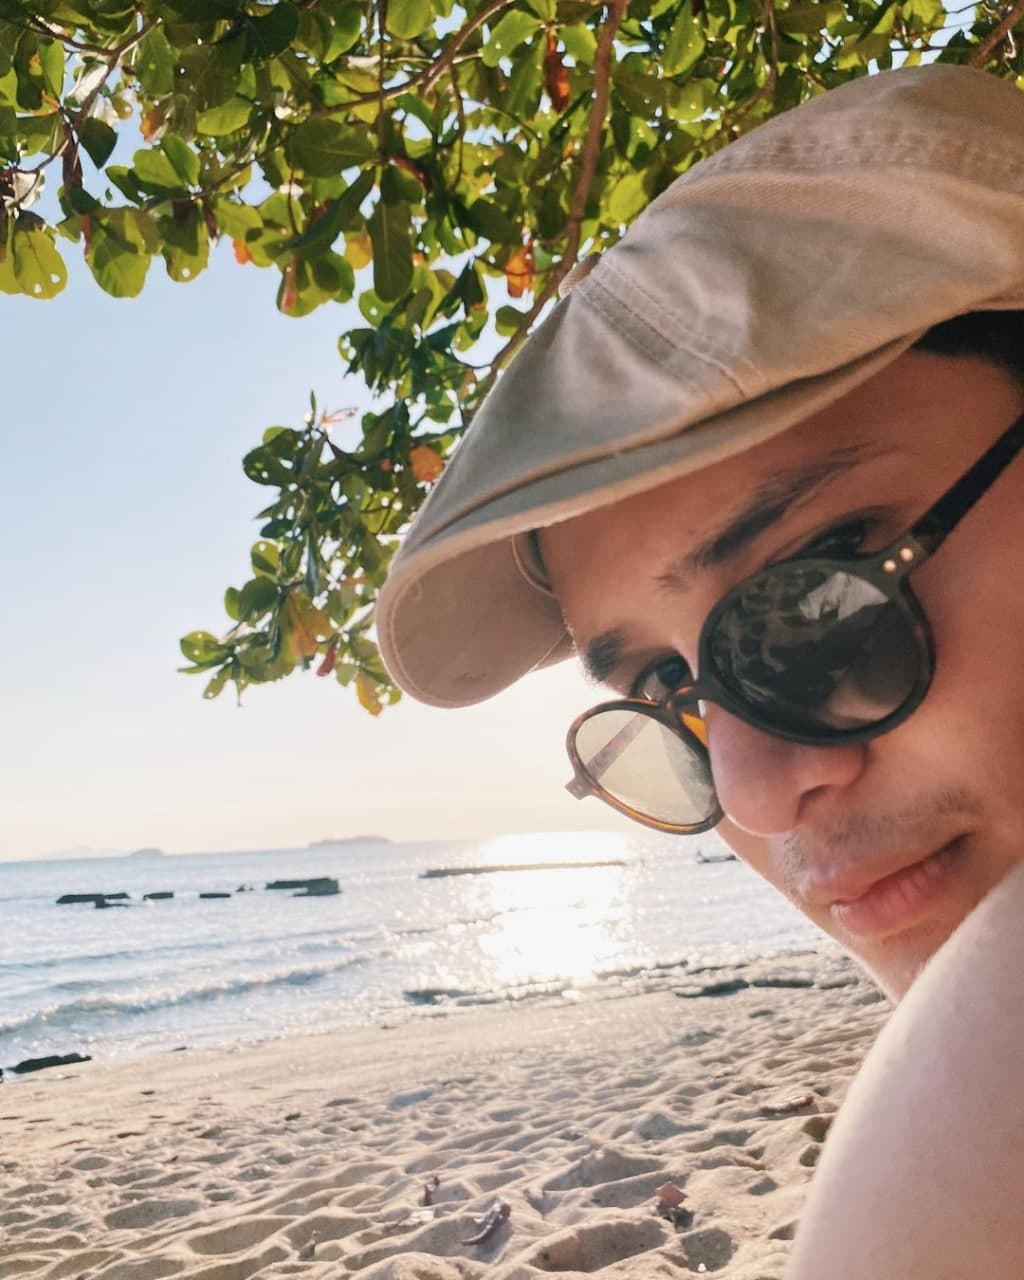 Ruru Madrid hanging out on the beach